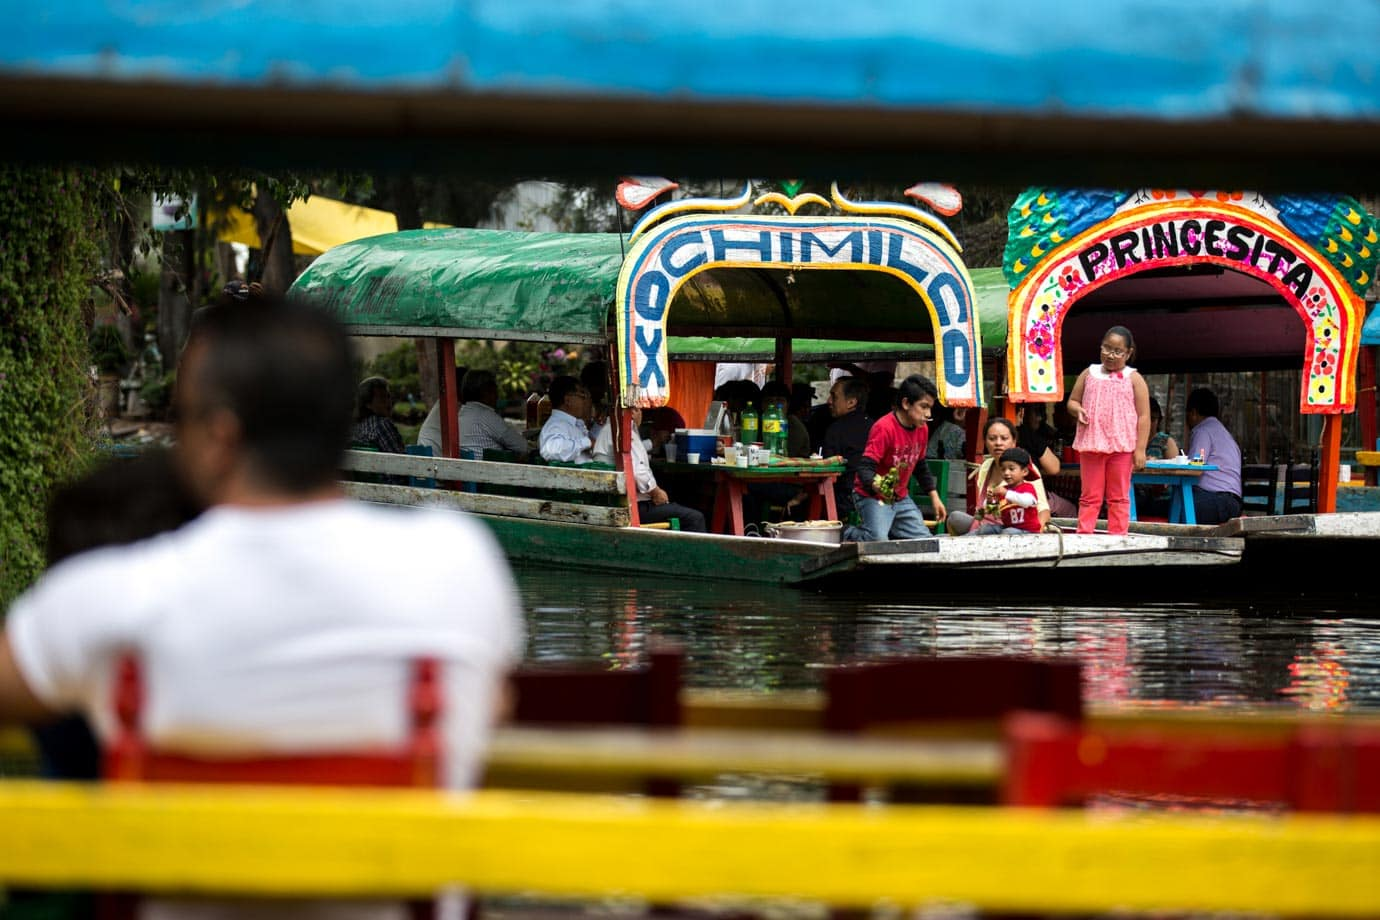 Xochimilco is a town made up of canals an hour's south of Mexico City